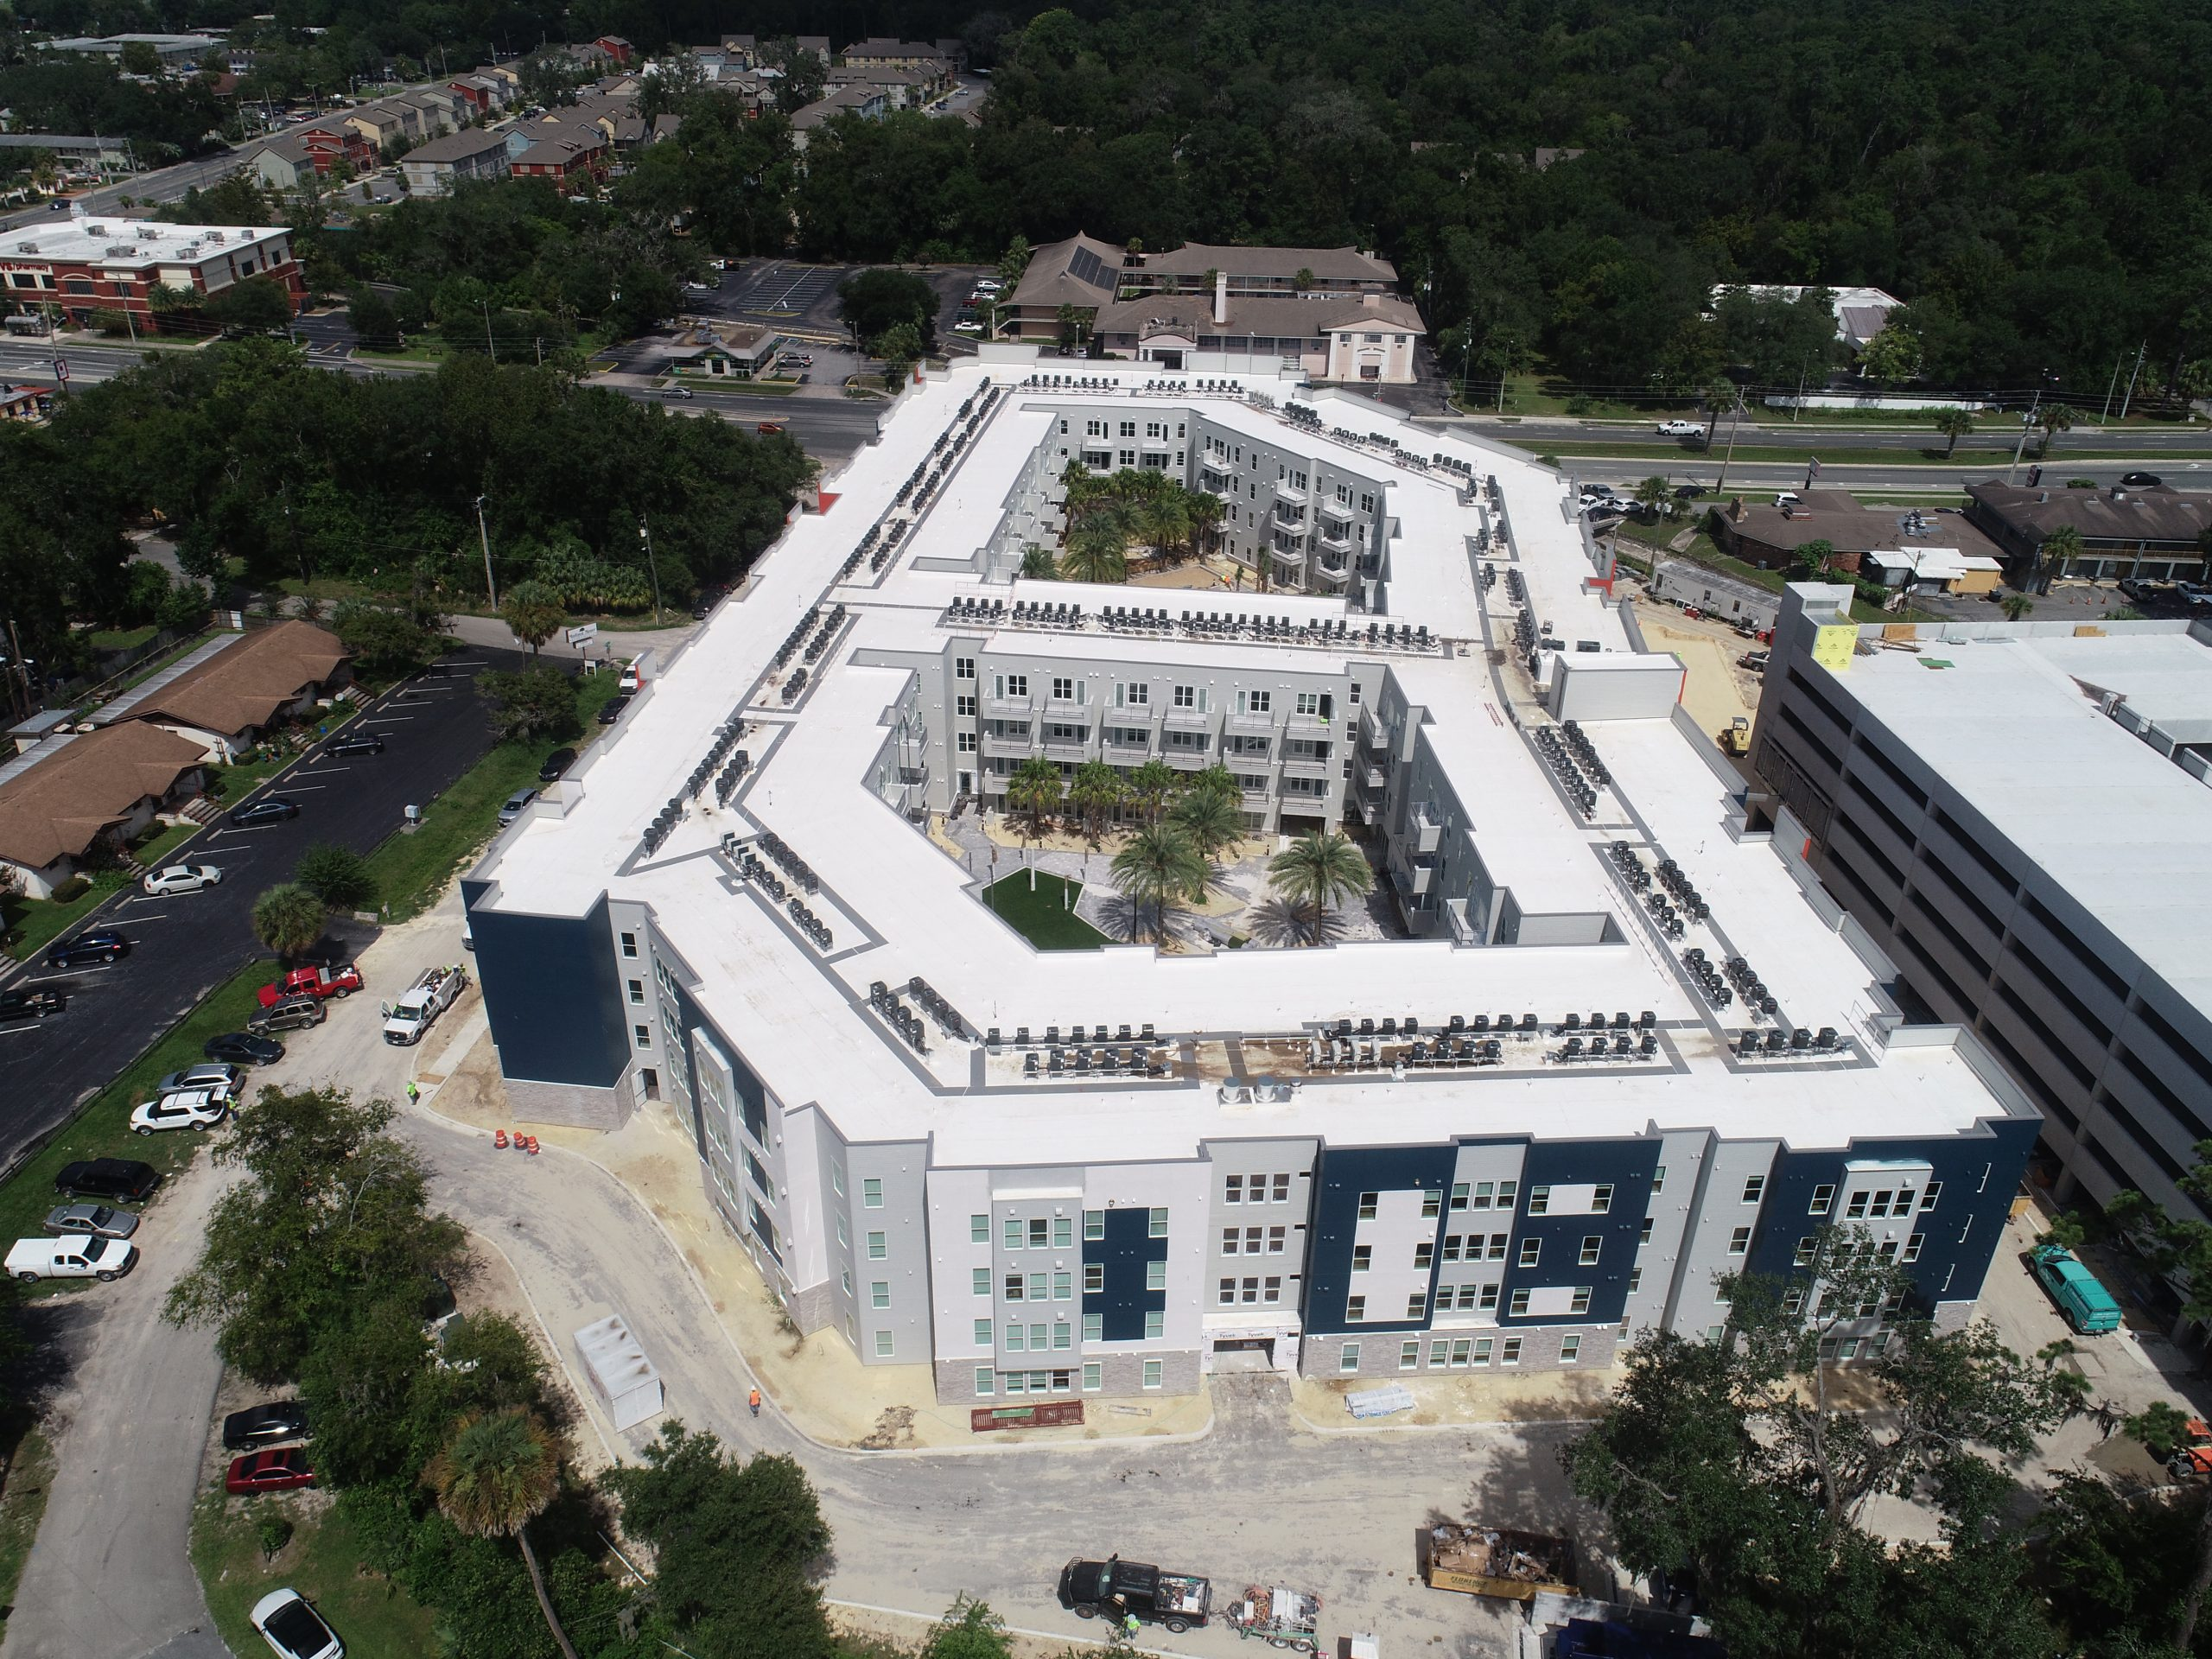 Aerial View of LIV+ Gainesville Apartments With Trees In The Center